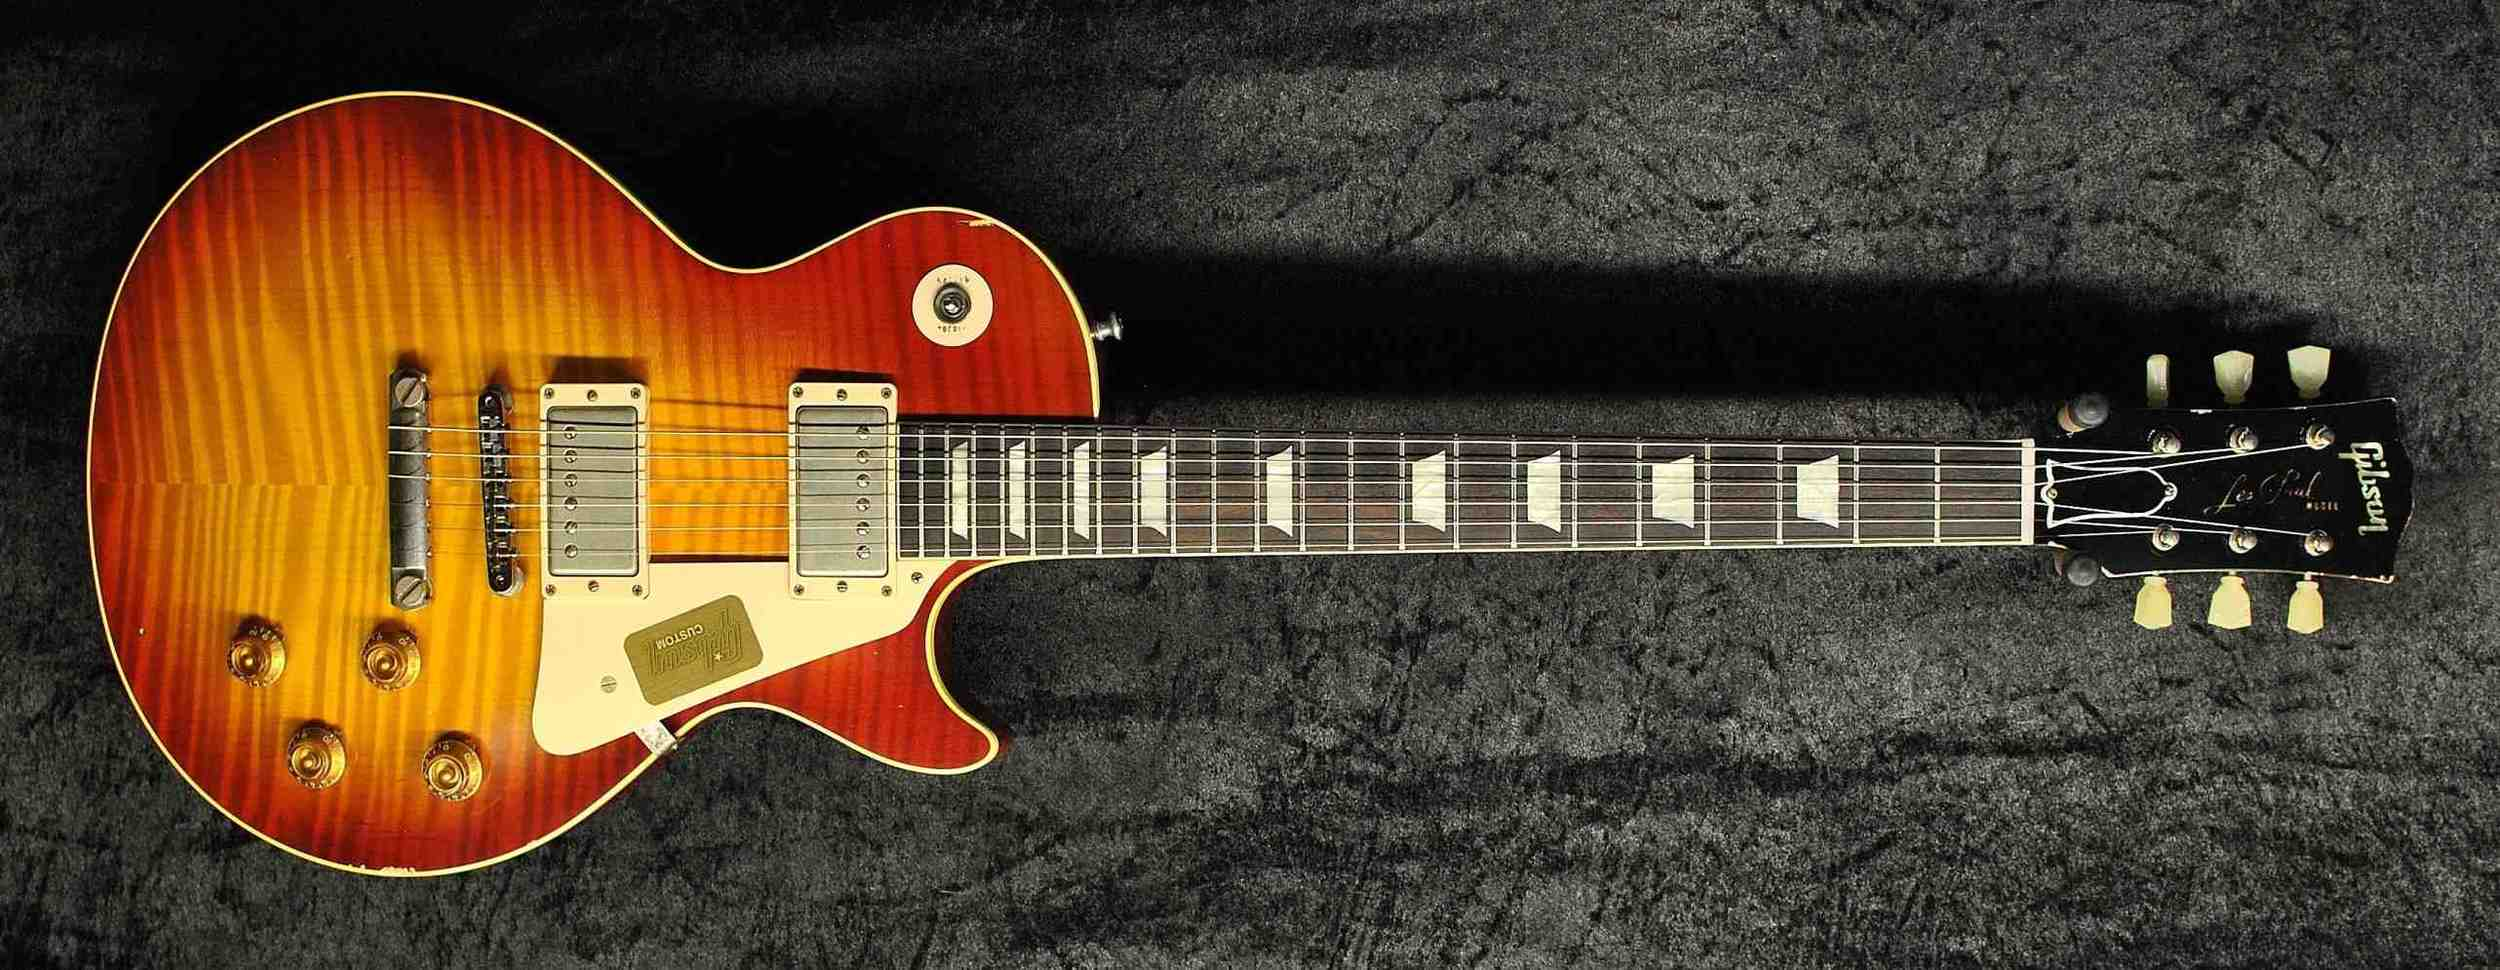 "The Gibson ""Believer Burst"" Les Paul - Collector's Choice #9"